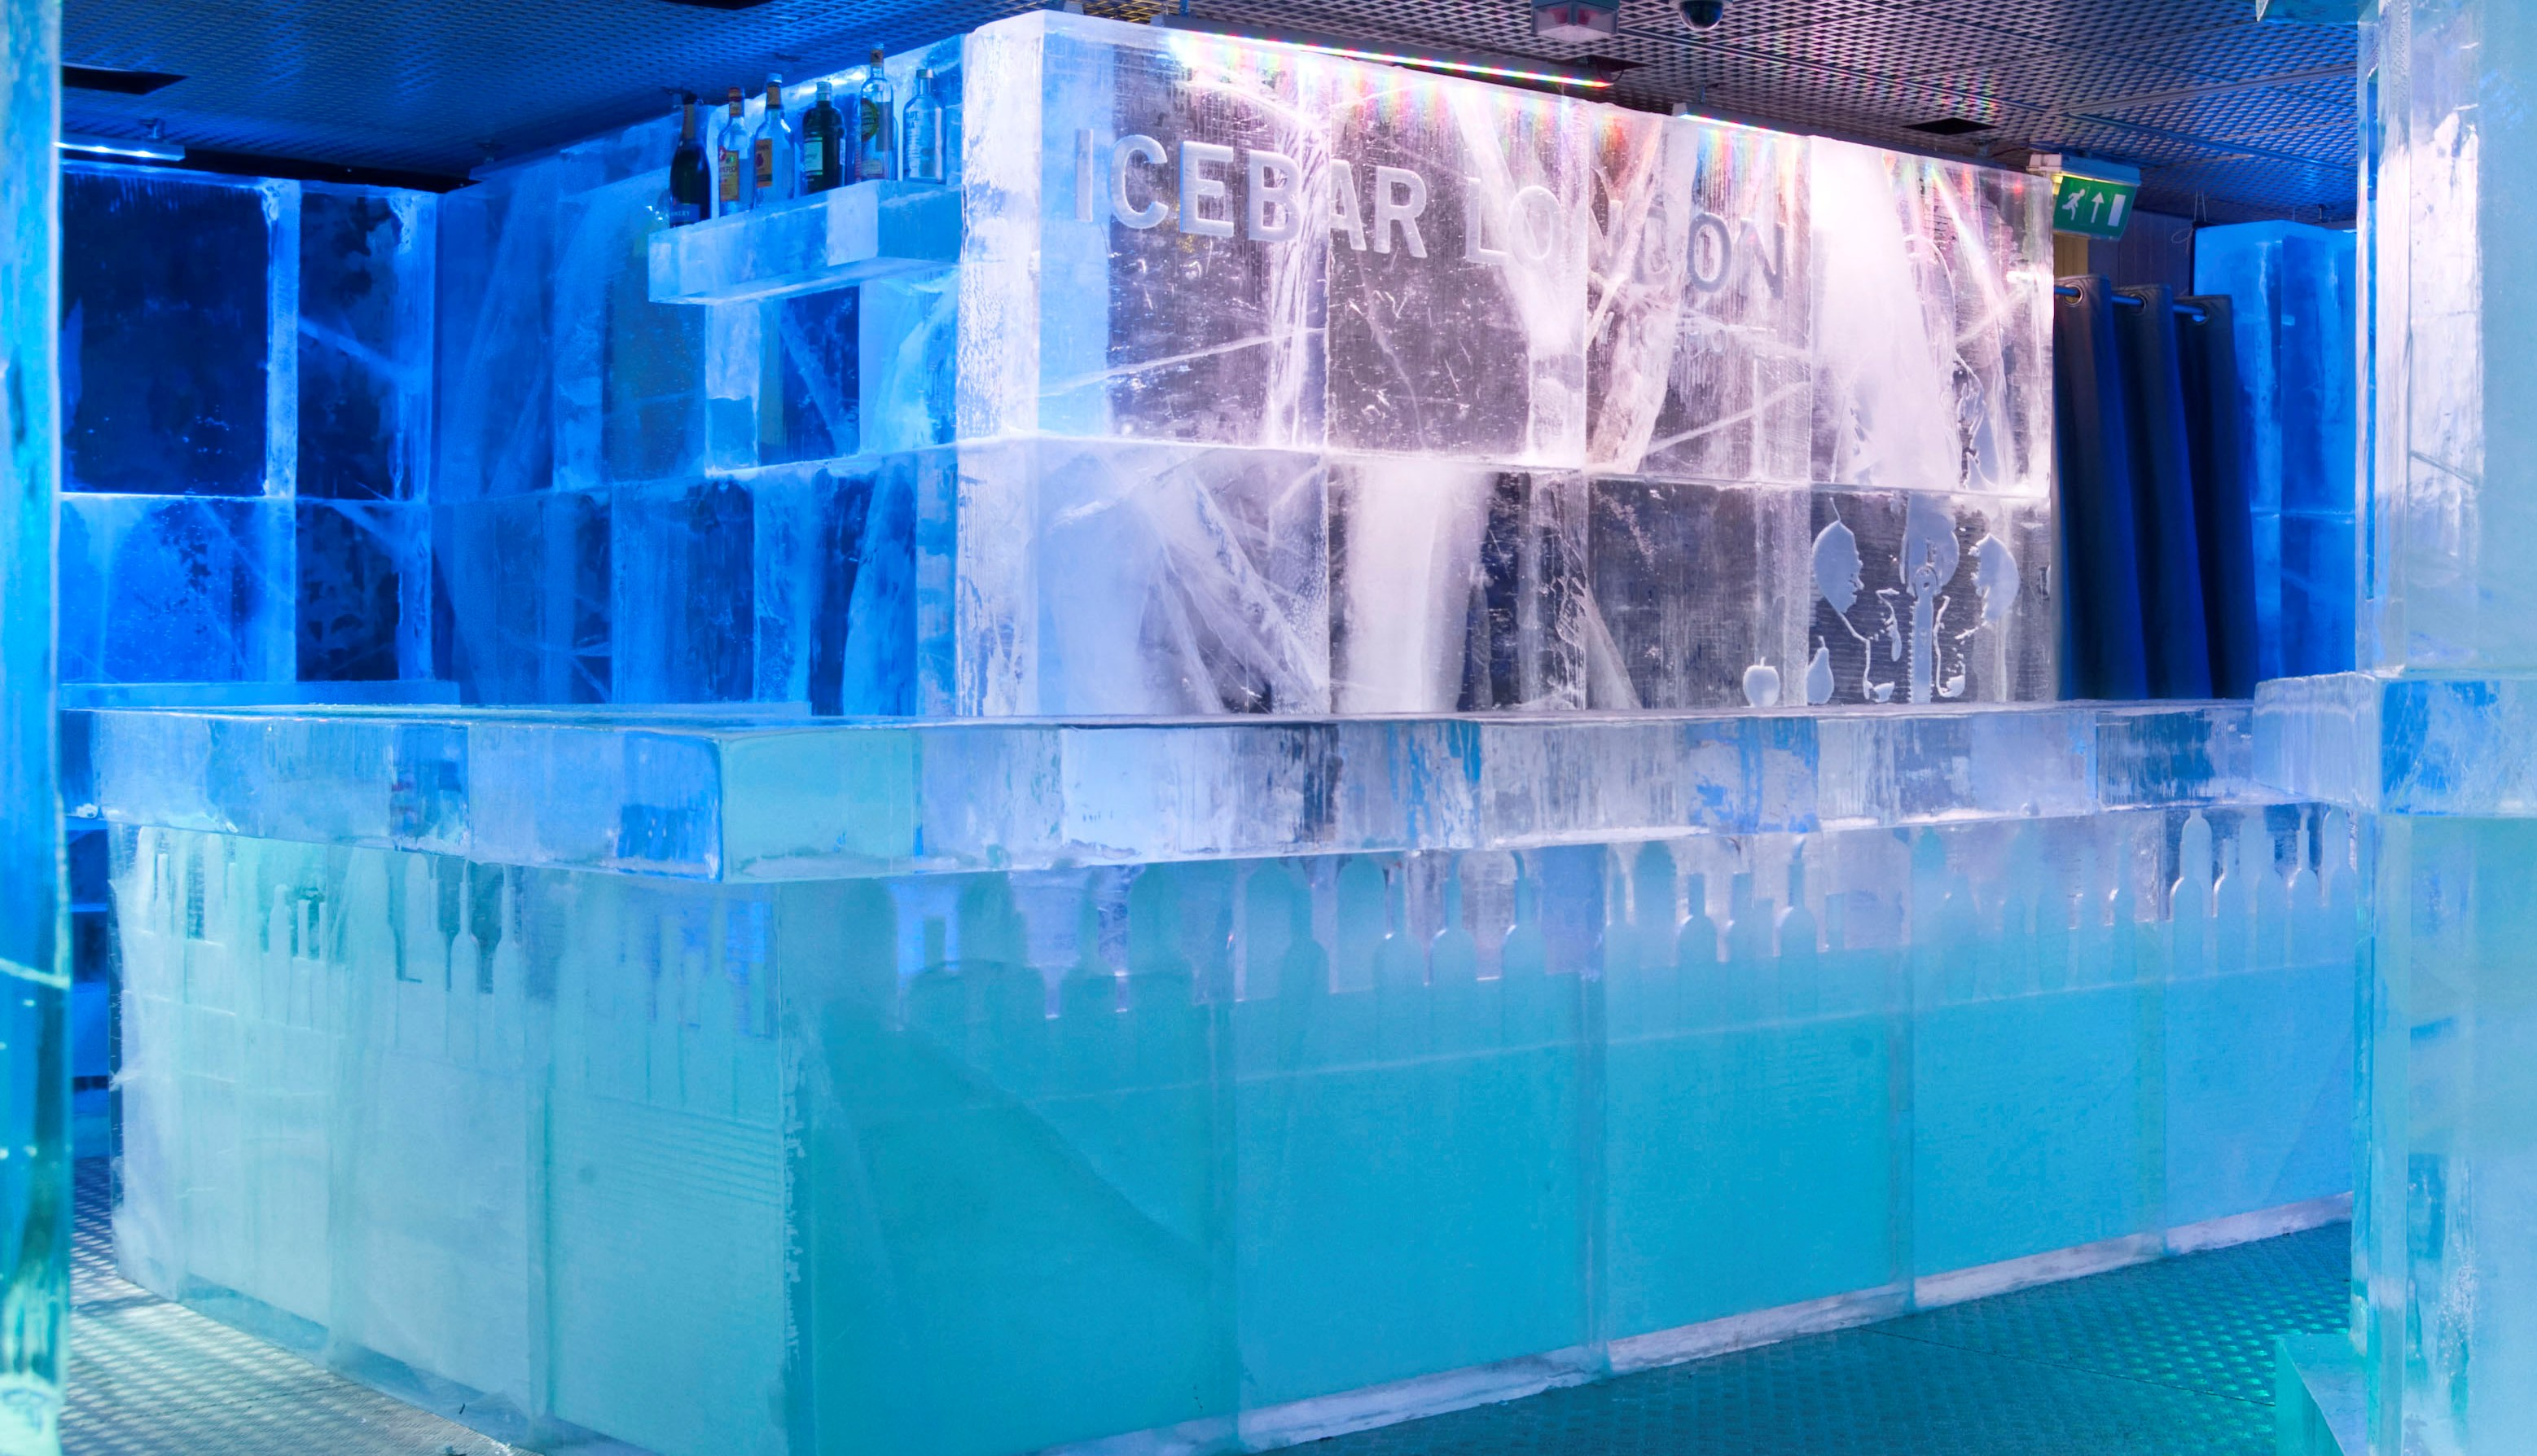 Icebar London Realwire Realresource